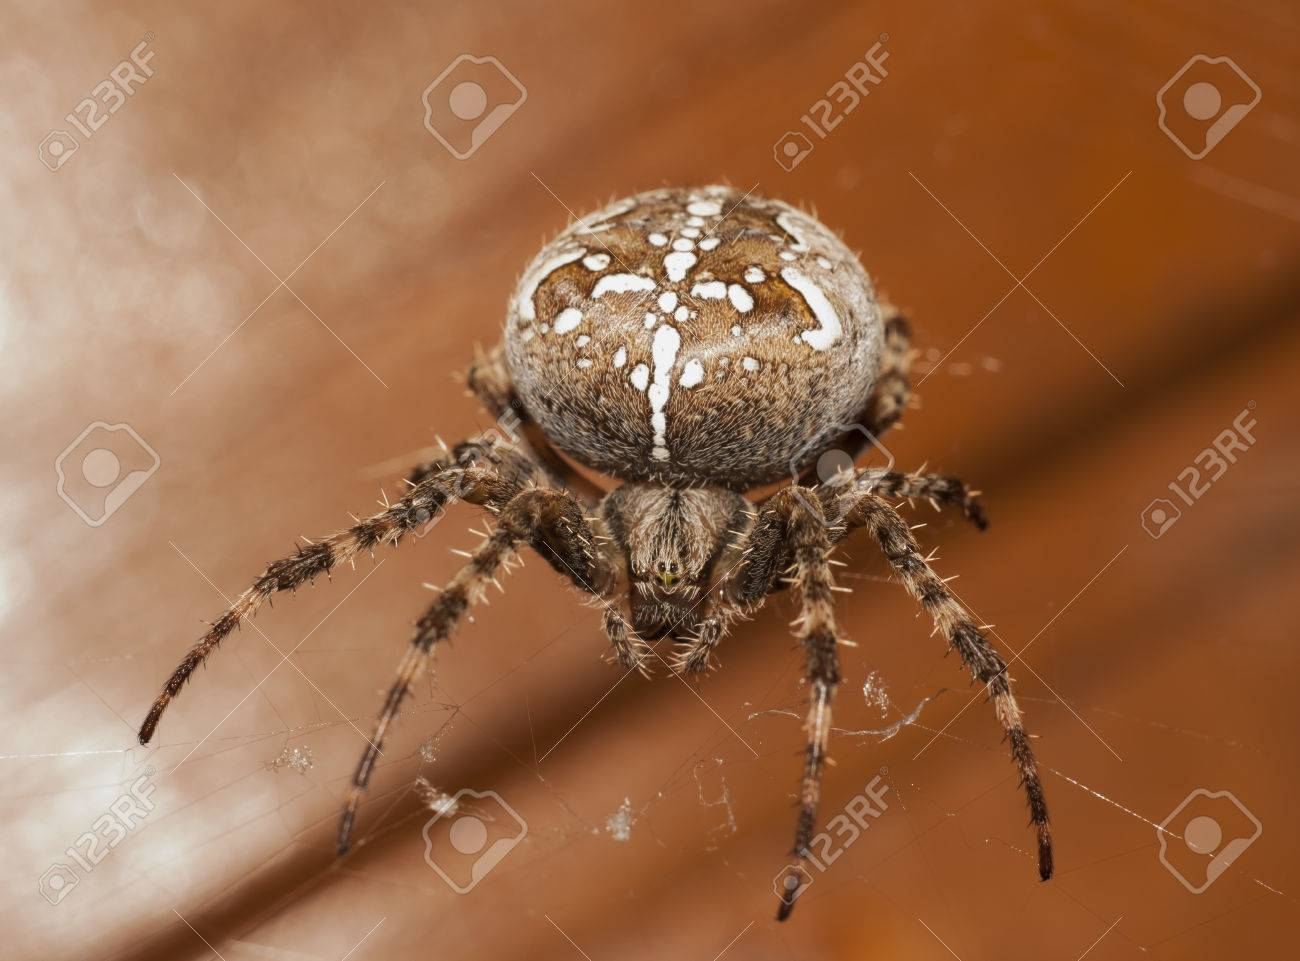 The Big Brown Spider Closeup Stock Photo, Picture And Royalty Free ...